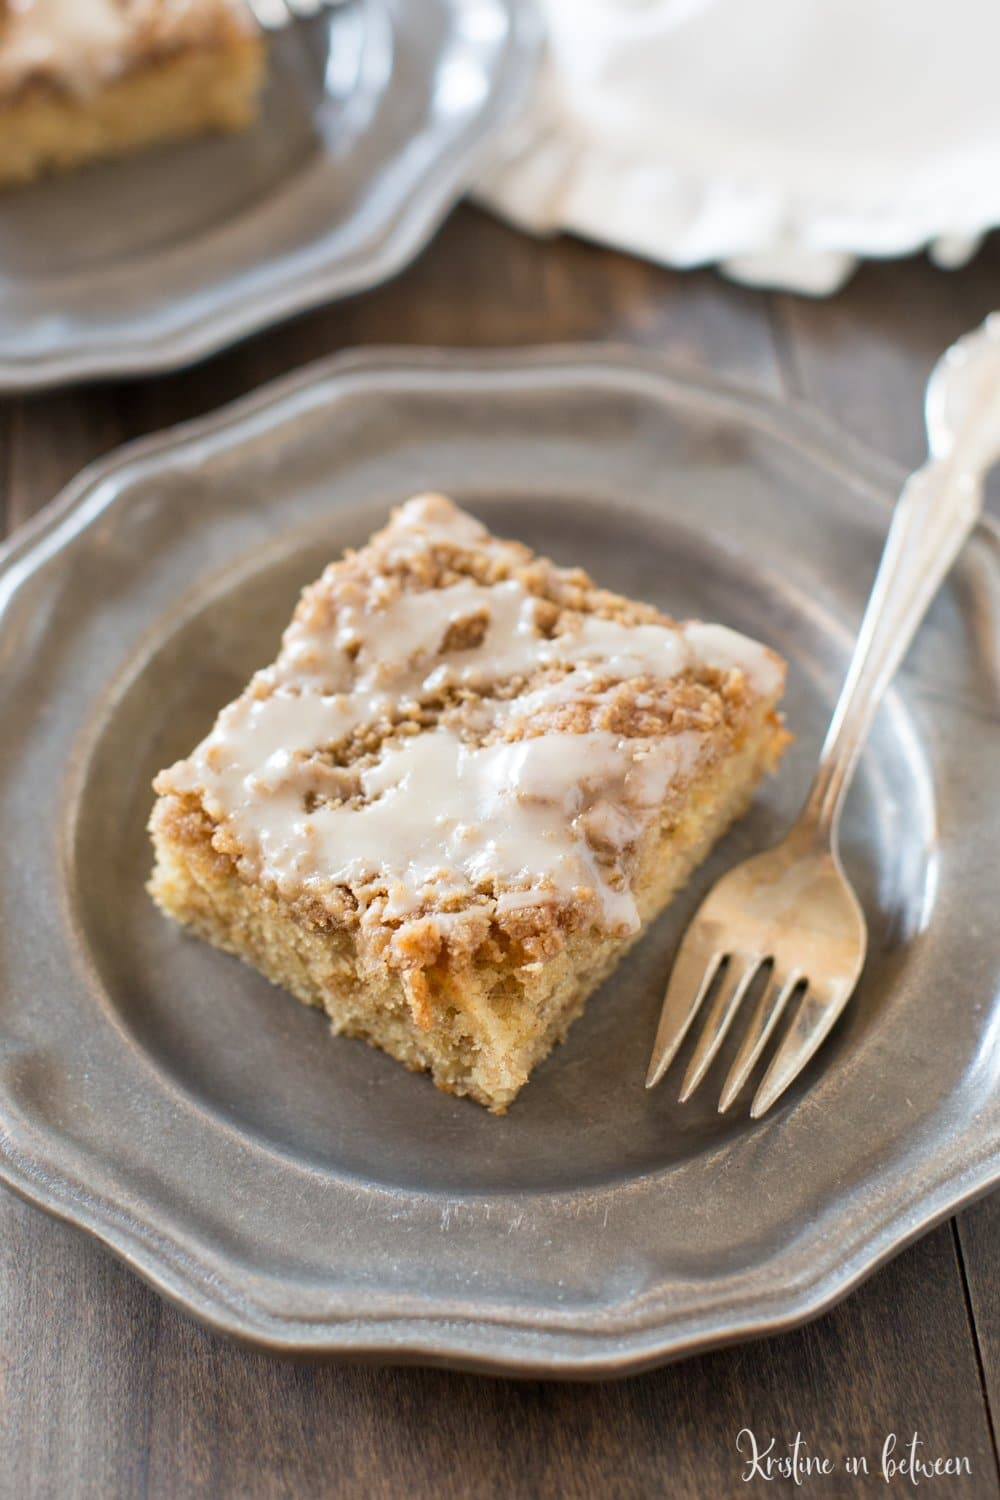 You'll love this quick and easy banana crumb cake!